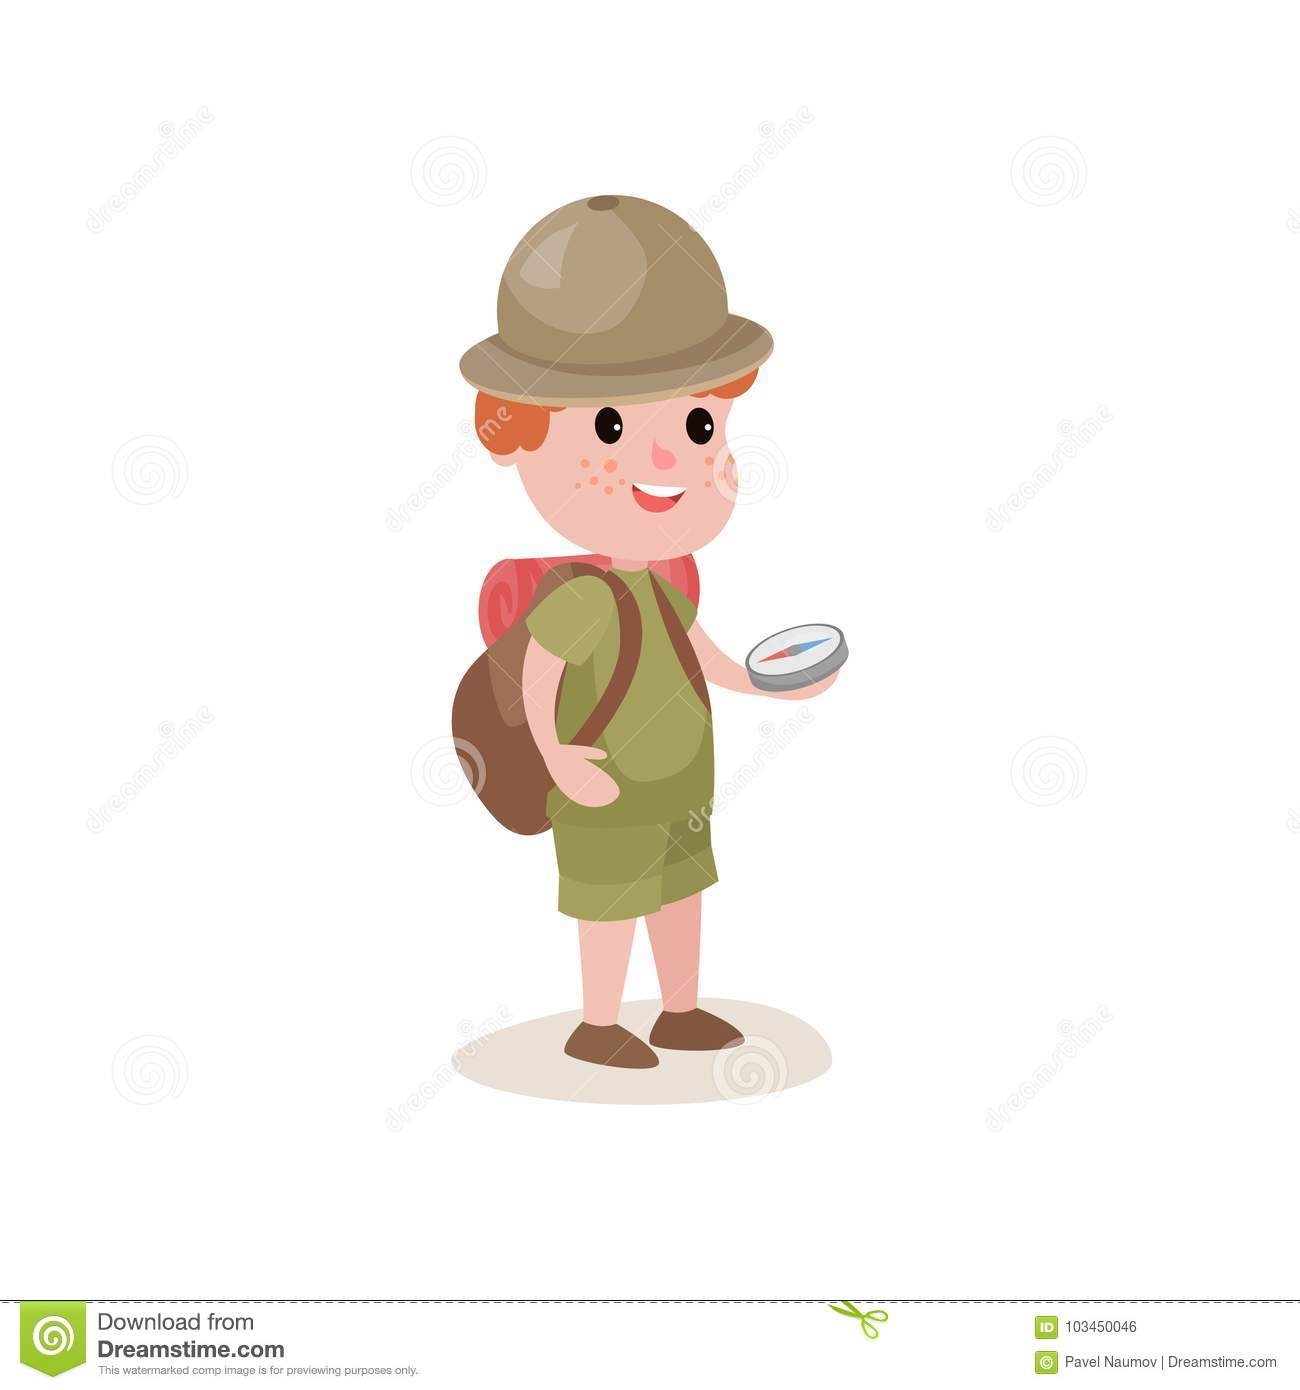 Young explorer with compass in hands and backpack on shoulders